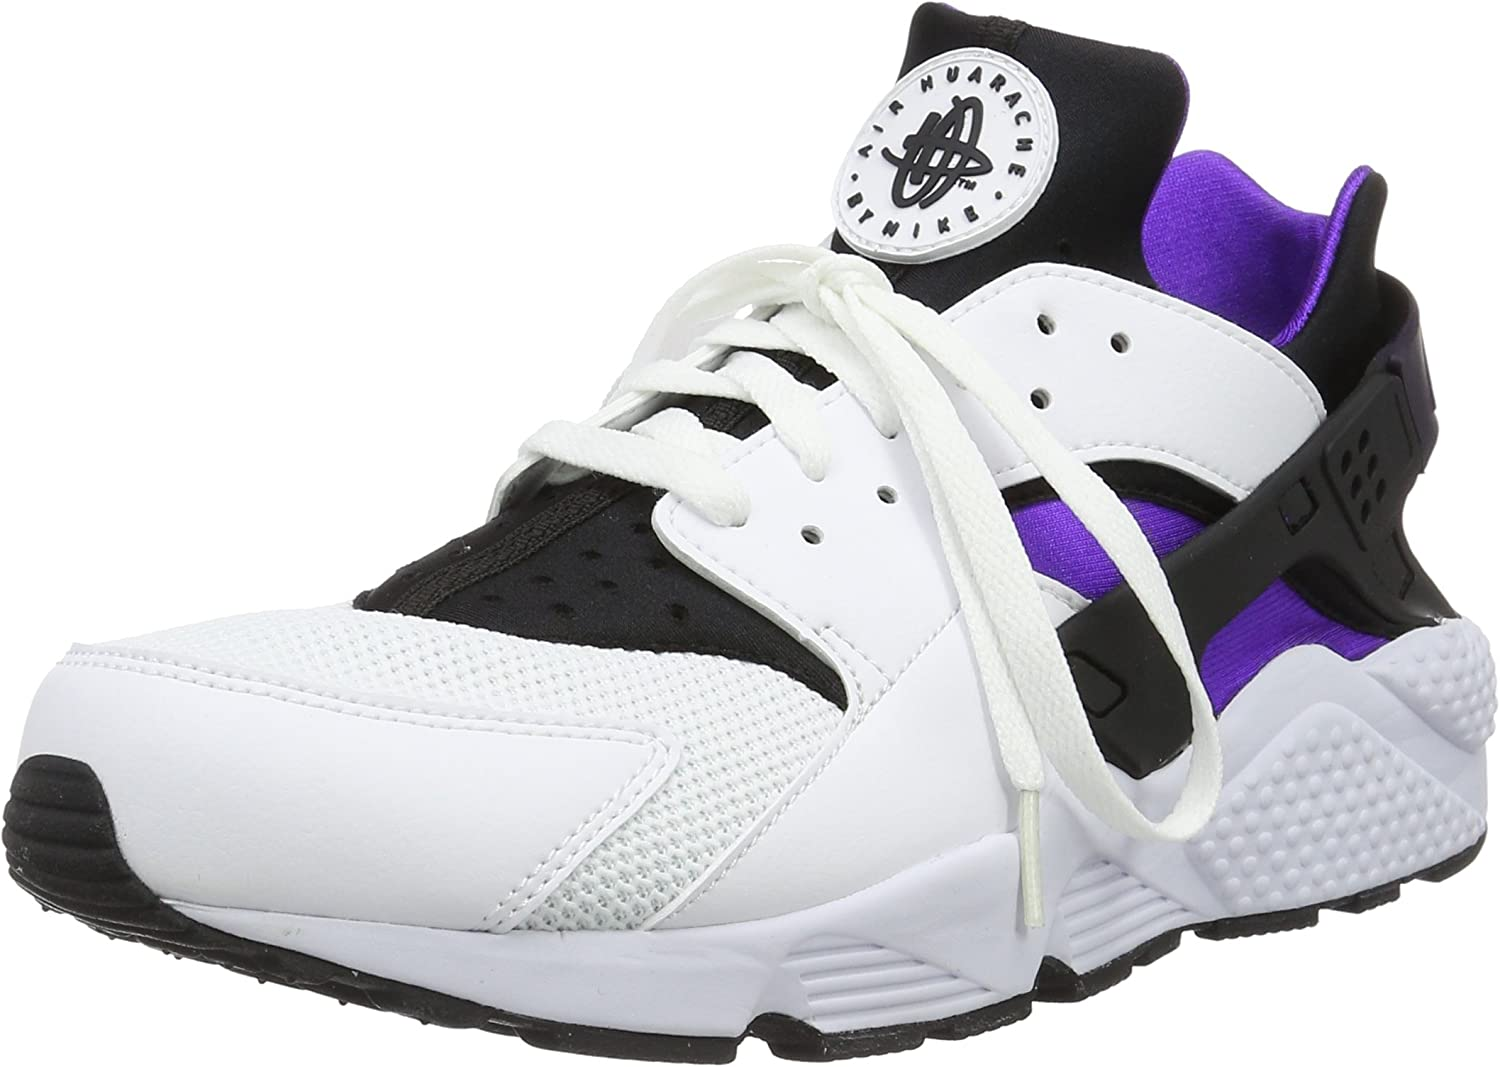 NIKE Men s Air Huarache Casual Sneakers Shoes White Grape 318429-105 9.5